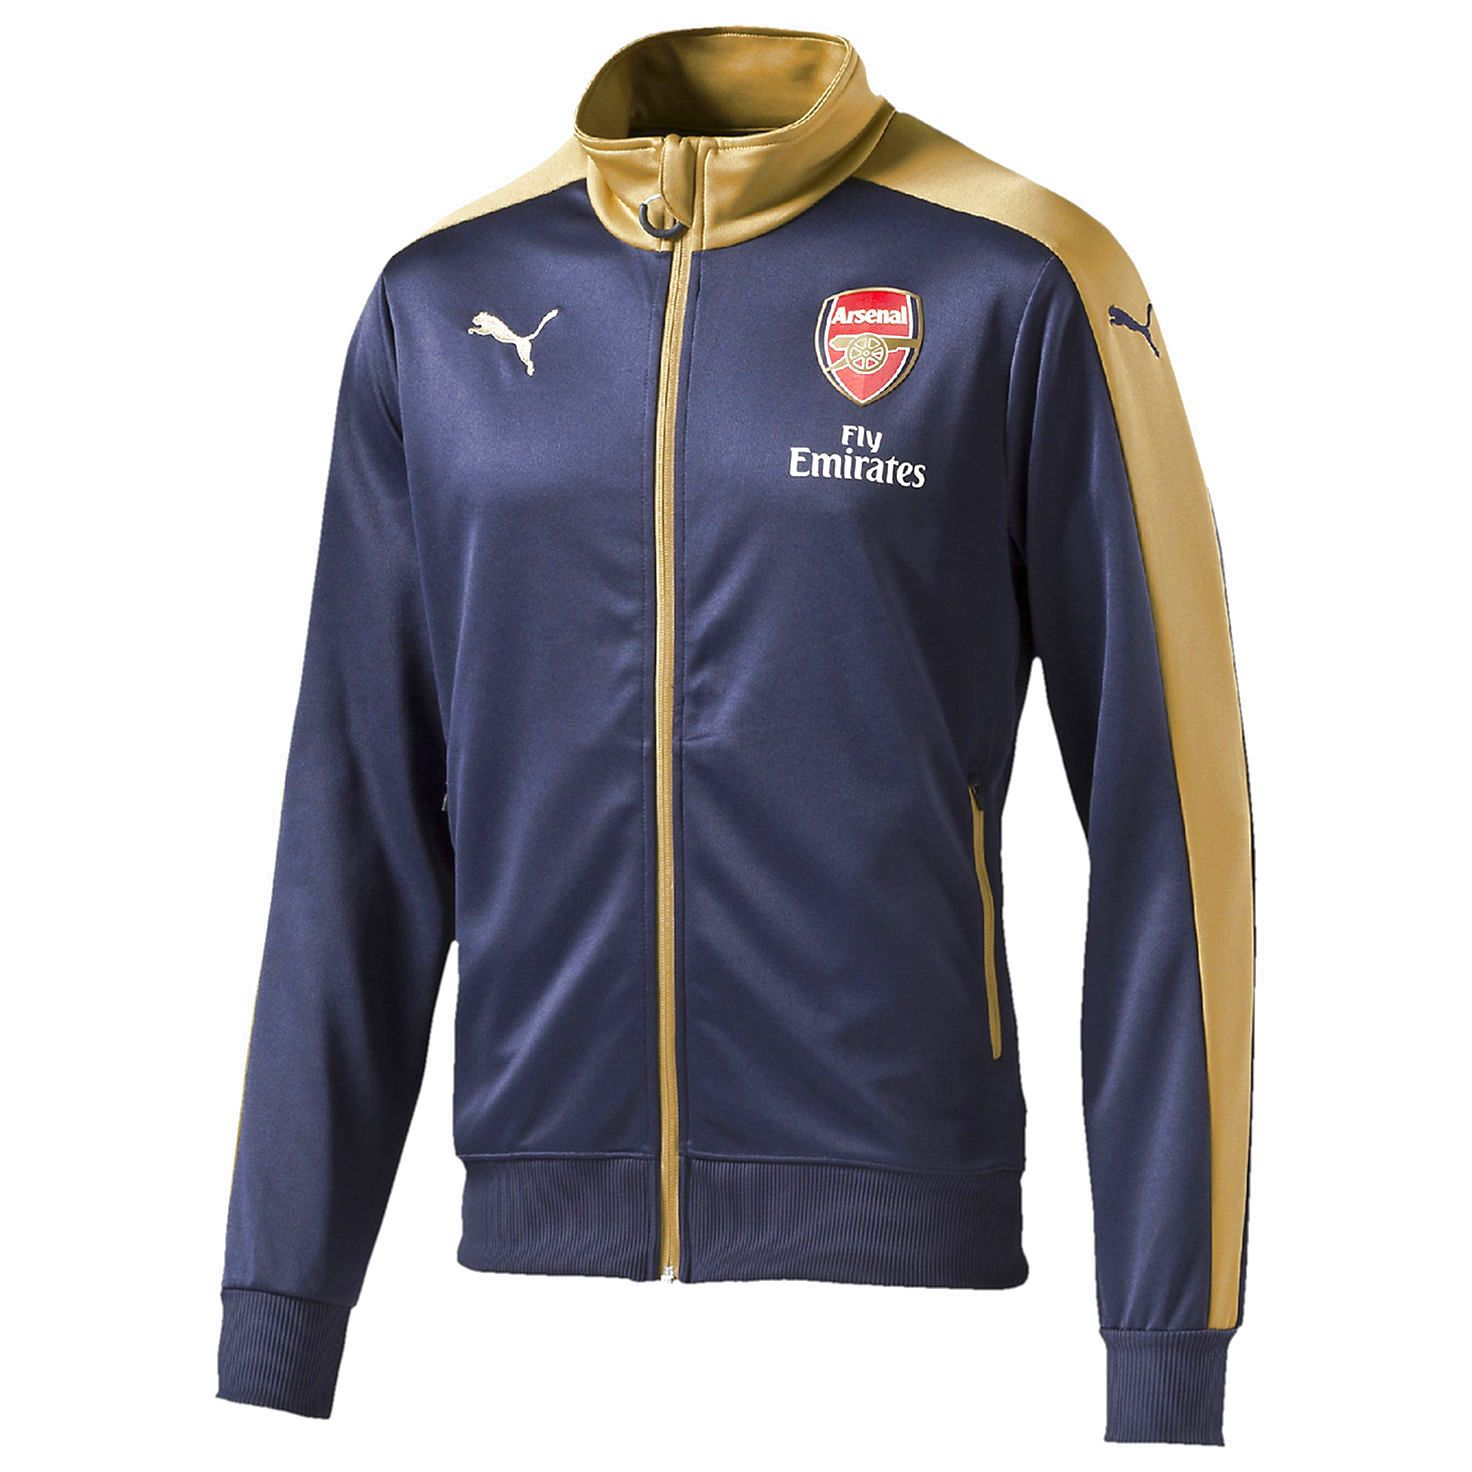 Arsenal FC Puma Stadium Jacket - Navy